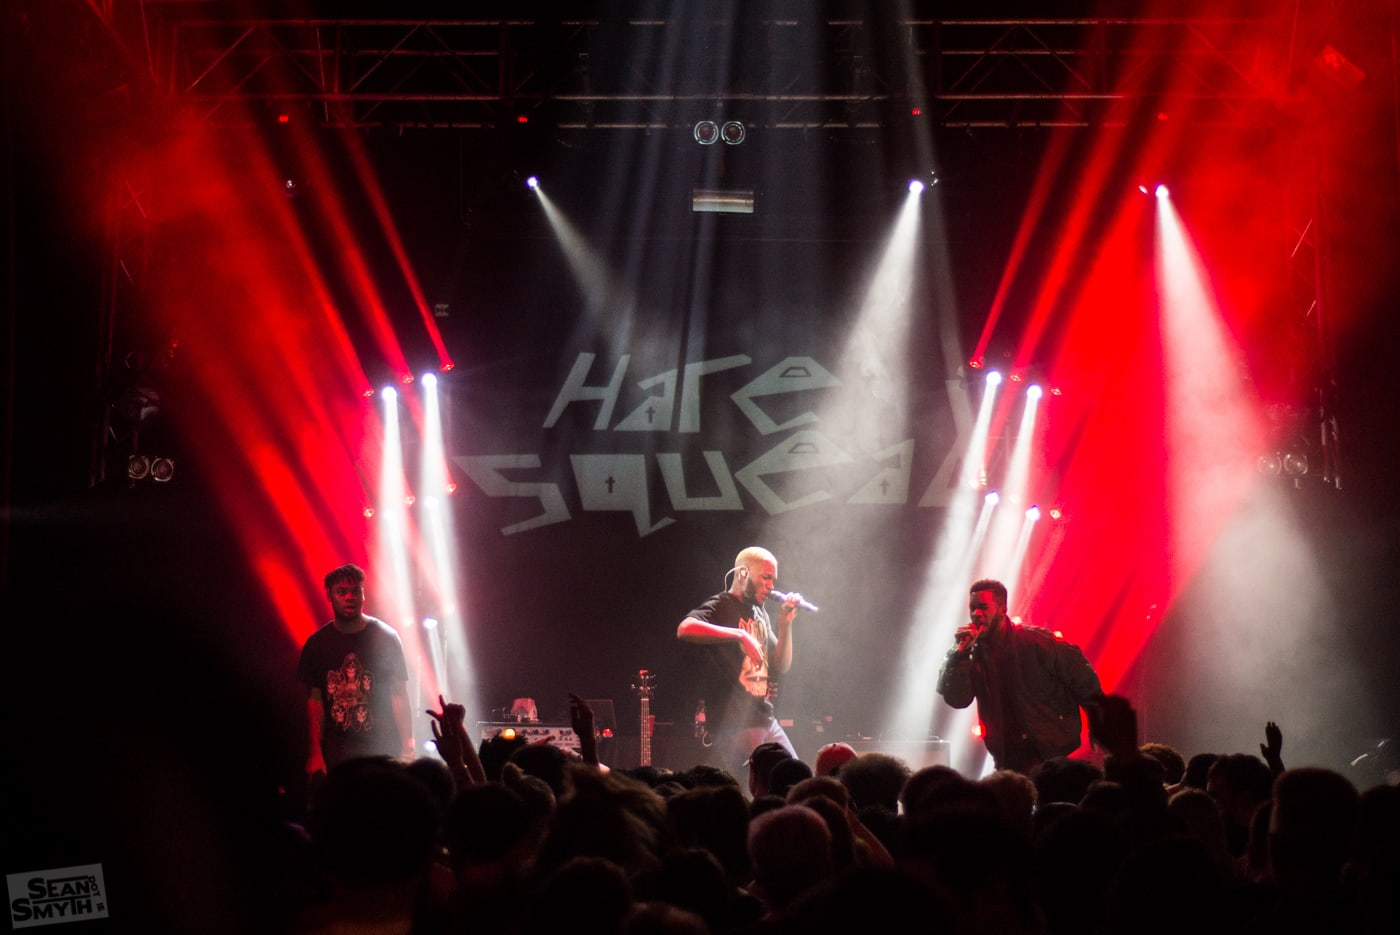 hare-squead-at-the-button-factory-by-sean-smyth-28-9-16-11-of-29